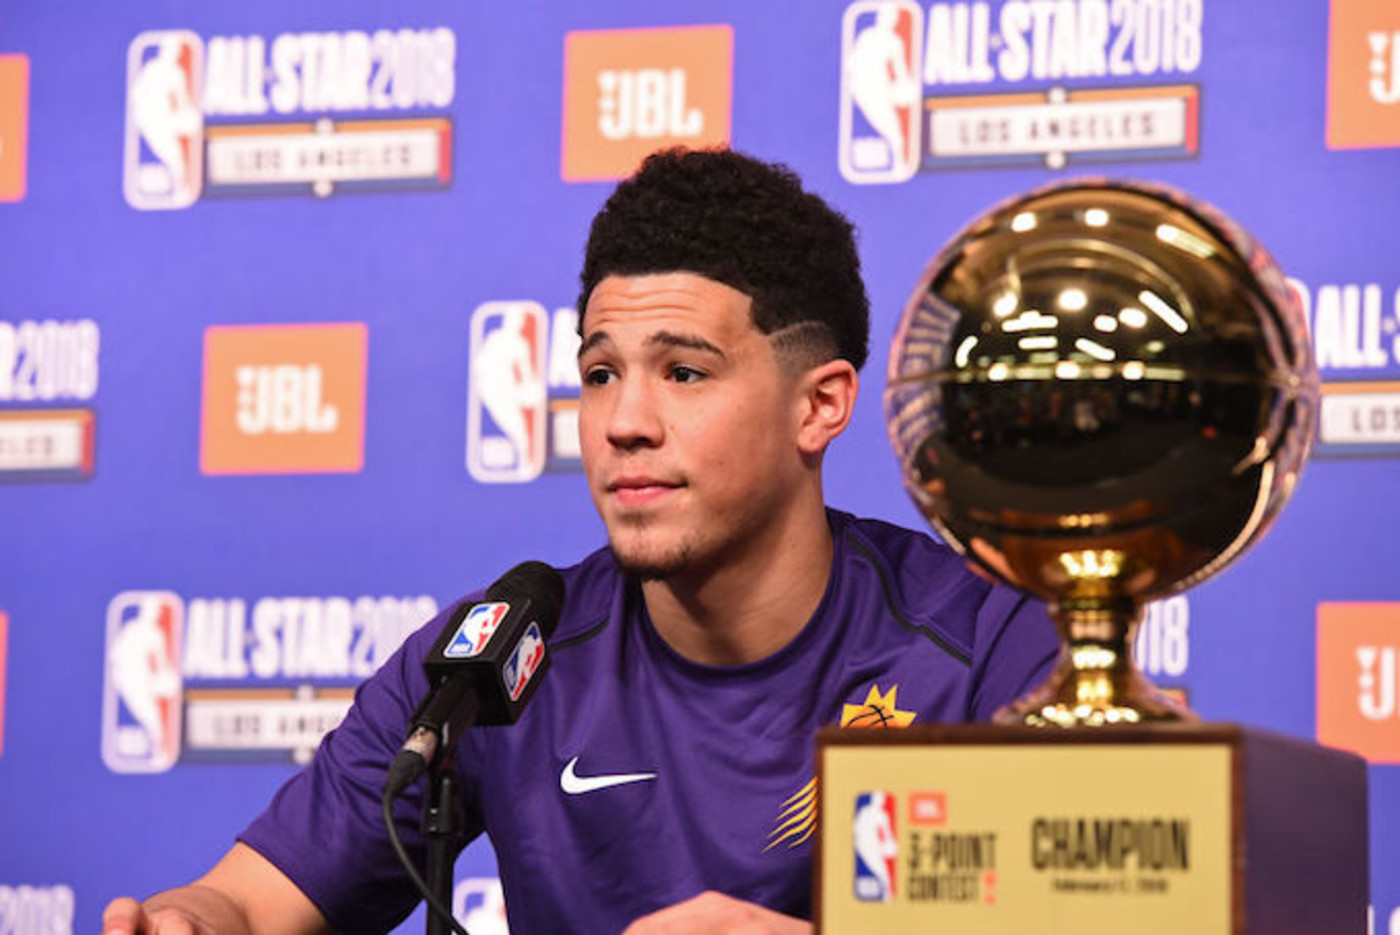 This is a picture of Devin Booker.